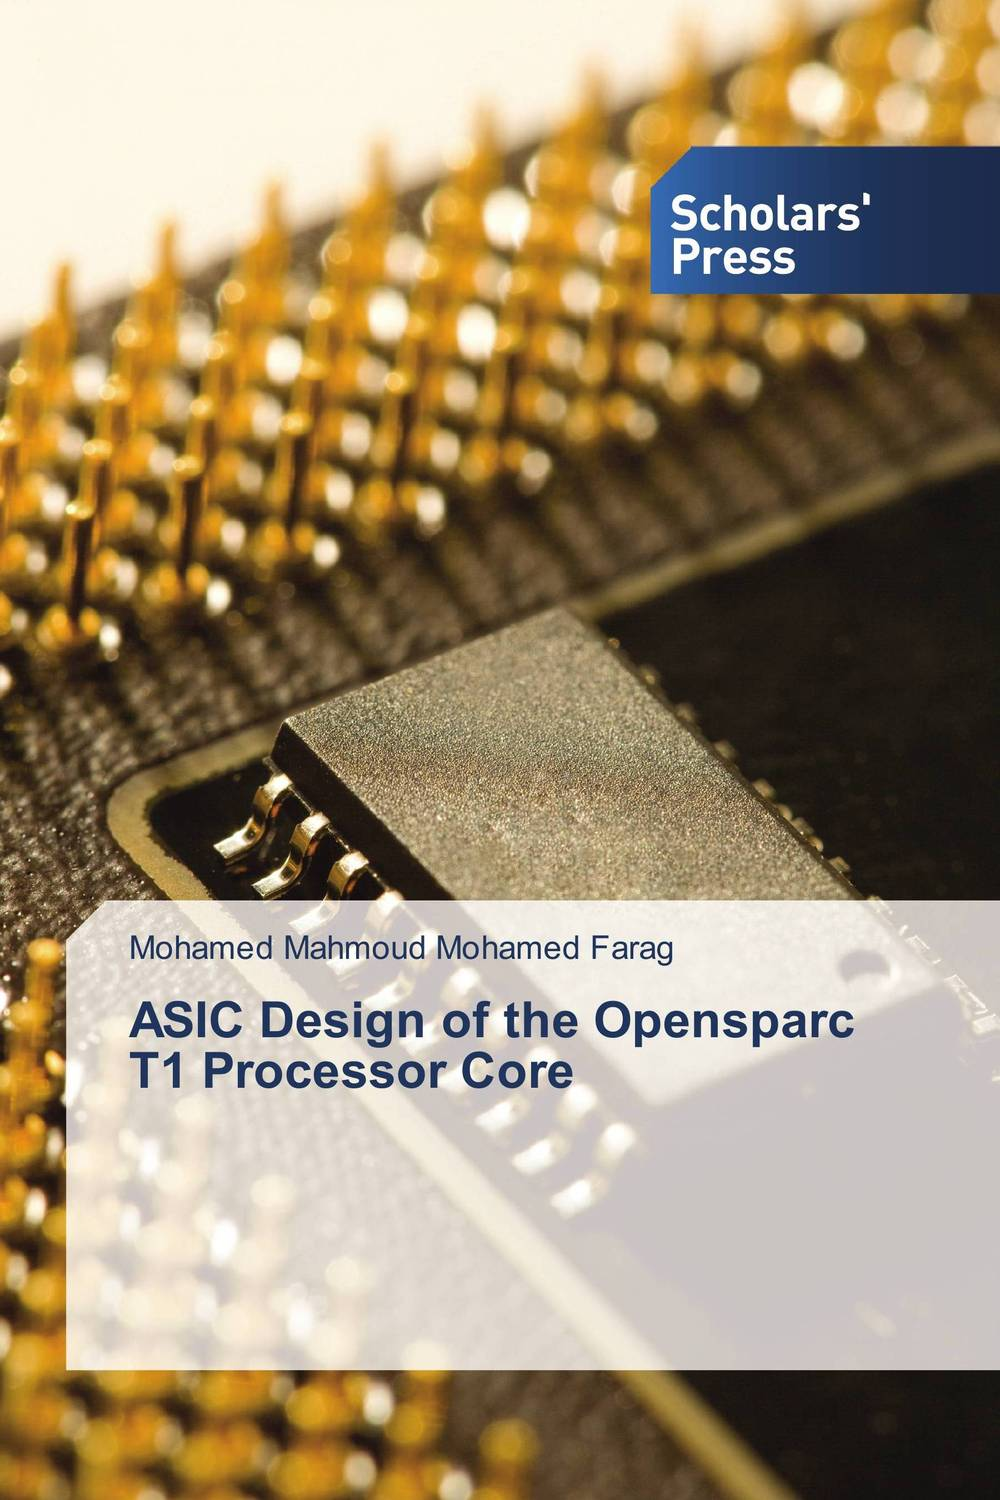 ASIC Design of the Opensparc T1 Processor Core